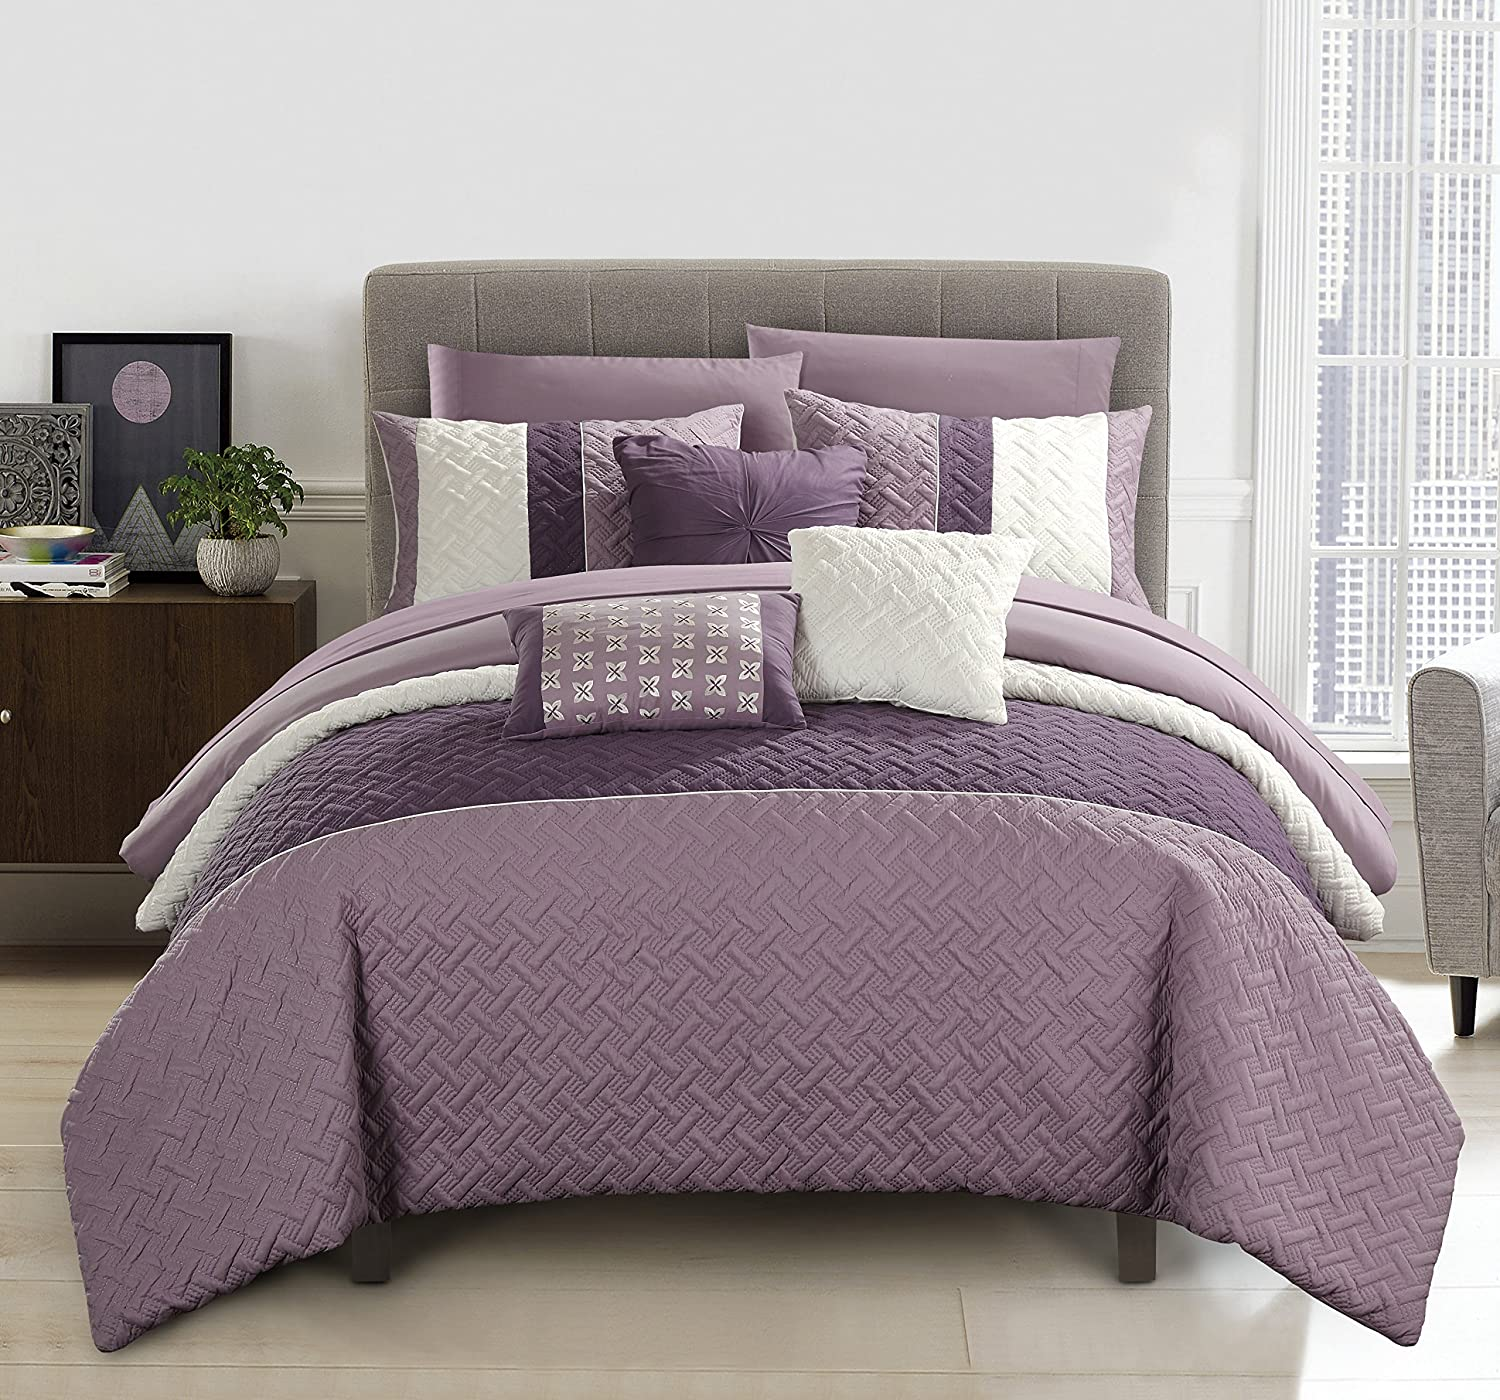 Chic Home Osnat 8 Piece Comforter Set Color Block Quilted Embroidered Design Bag Bedding – Sheets Decorative Pillows Sham Included, Twin, Plum